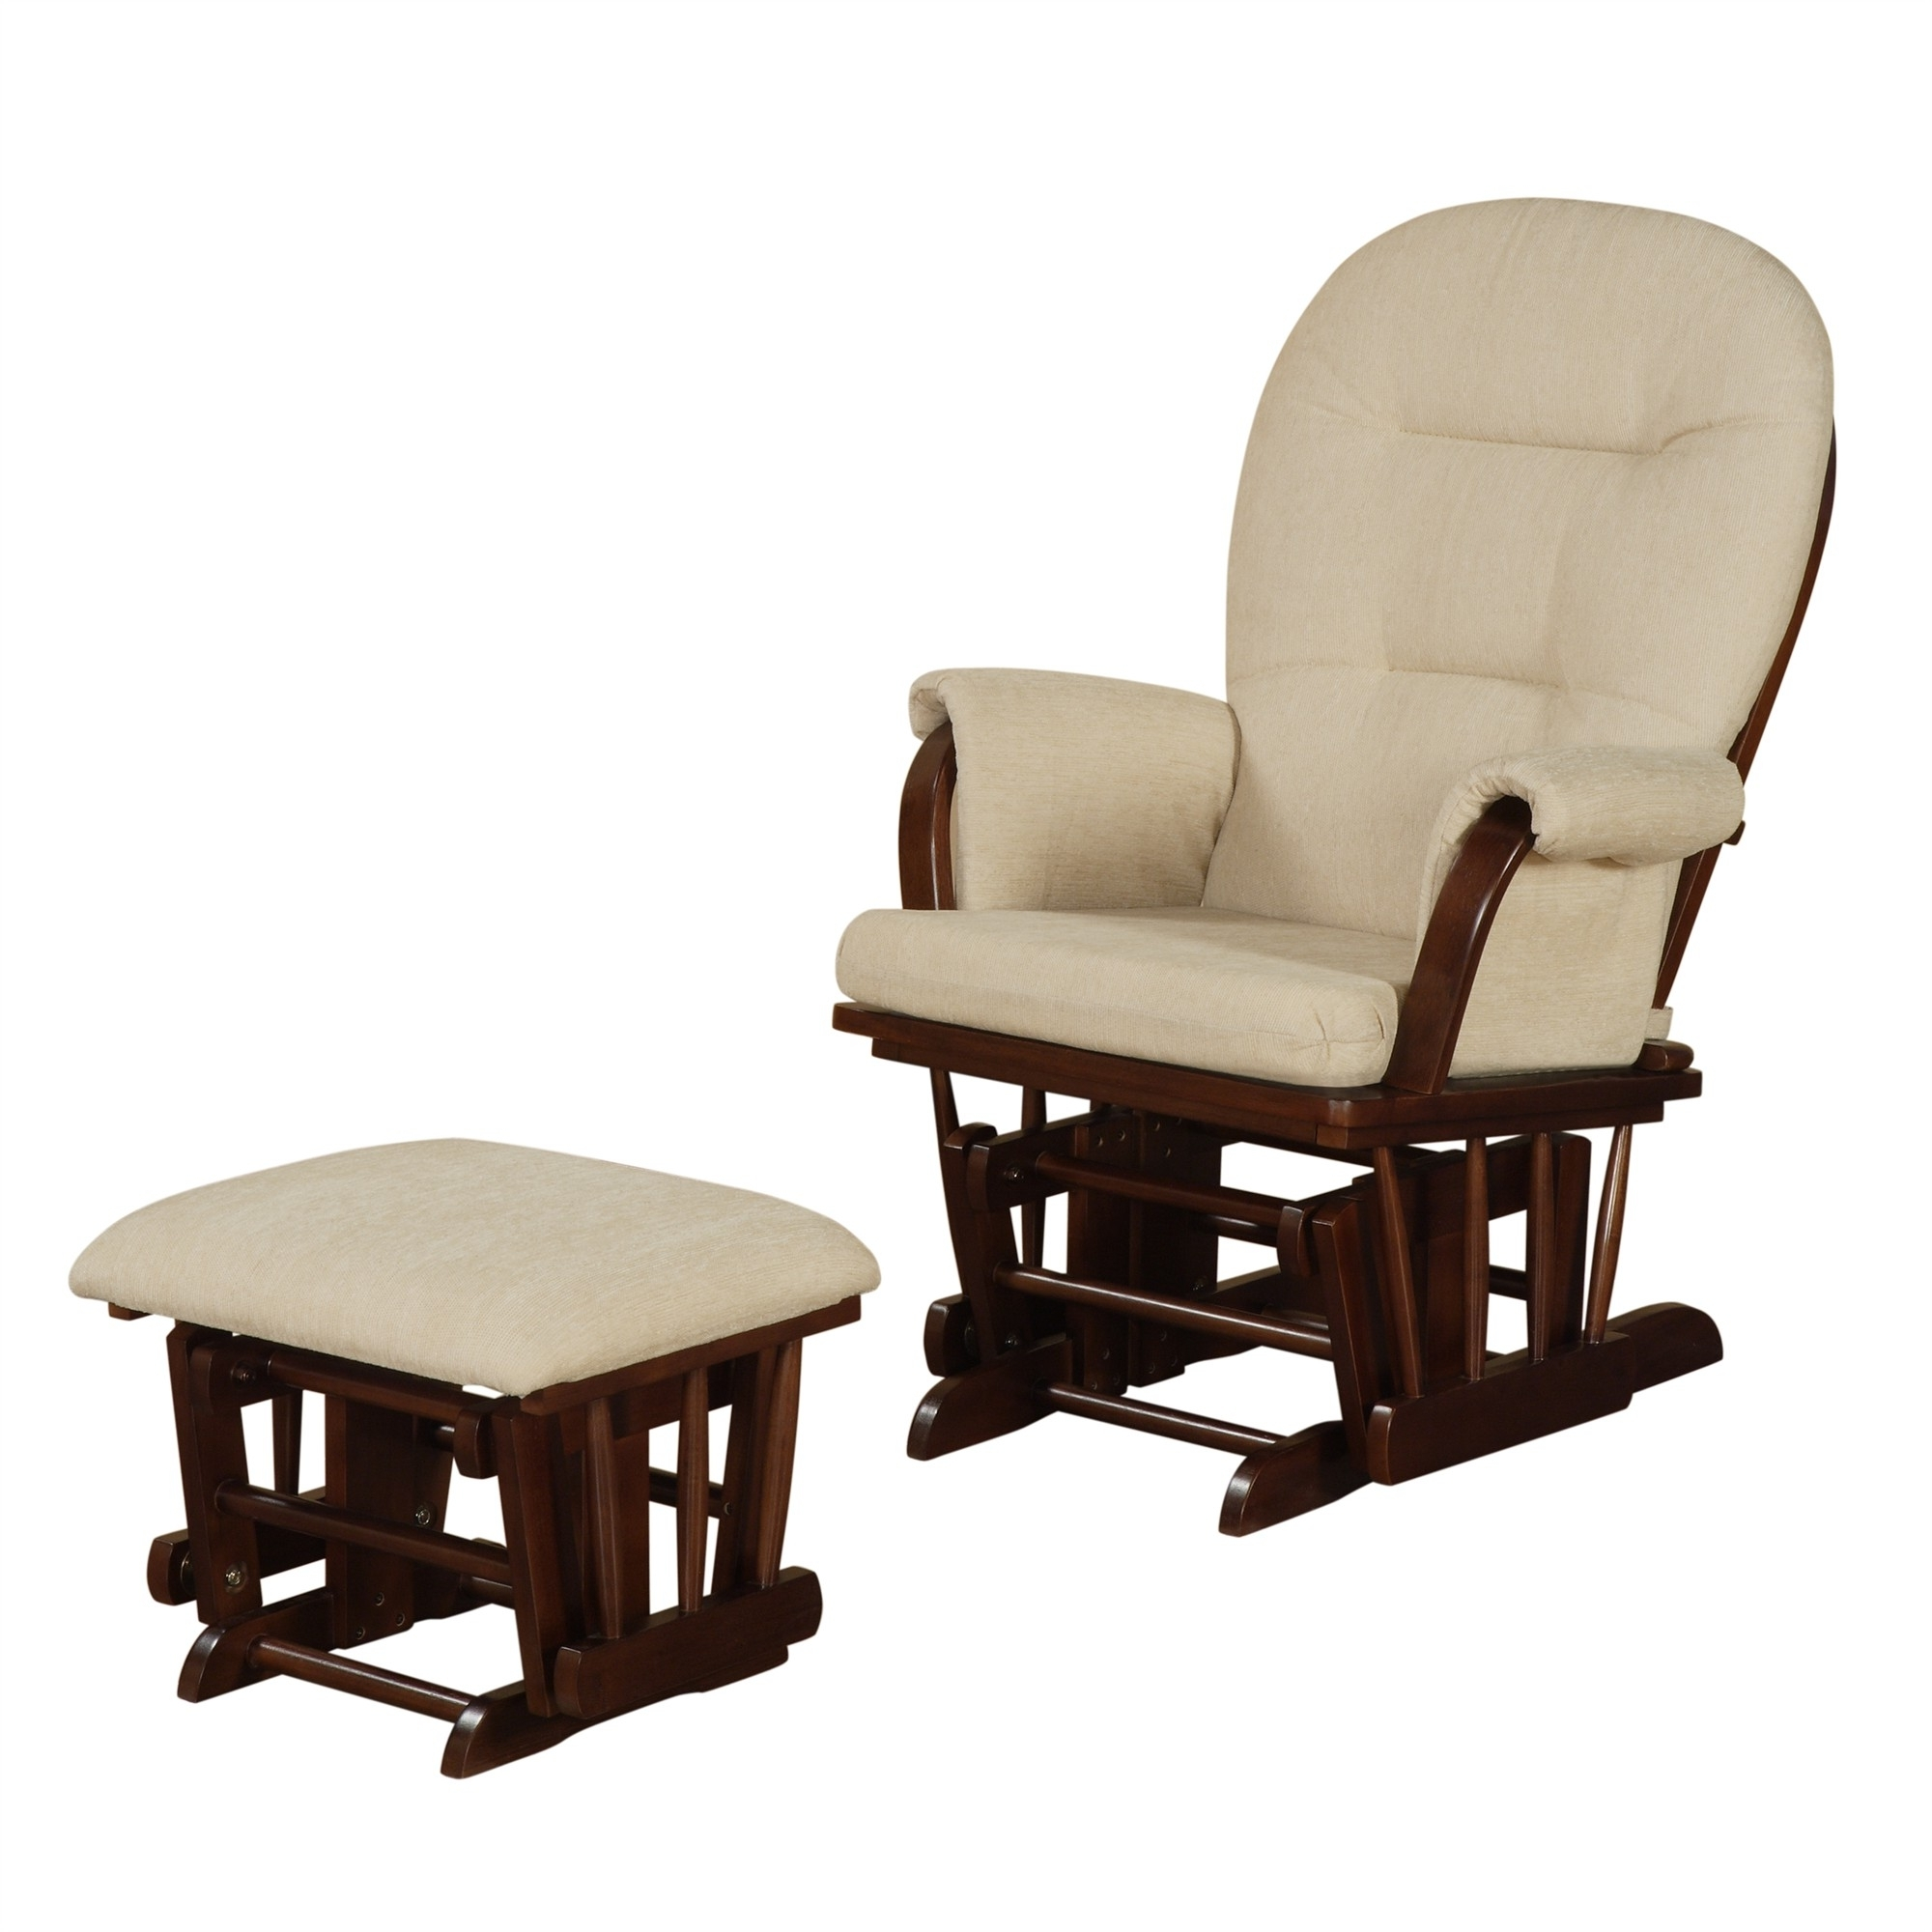 Widely Used Rocking Chair Design Ottoman Rocking Chair Glider Rocker Recliner Throughout Rocking Chairs With Ottoman (View 14 of 15)